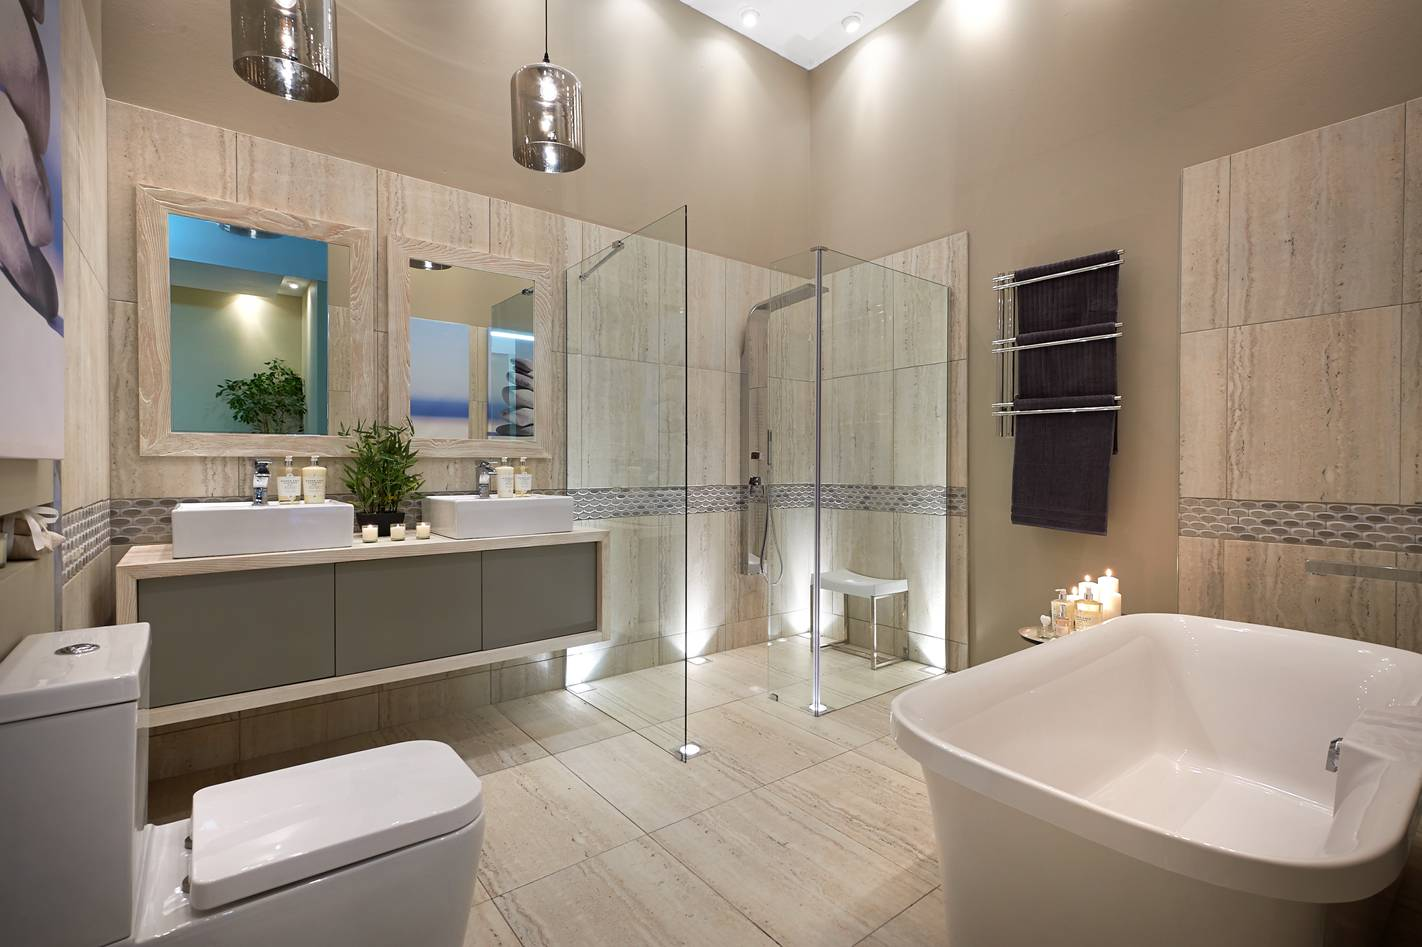 Top Design Tips For Family Bathrooms